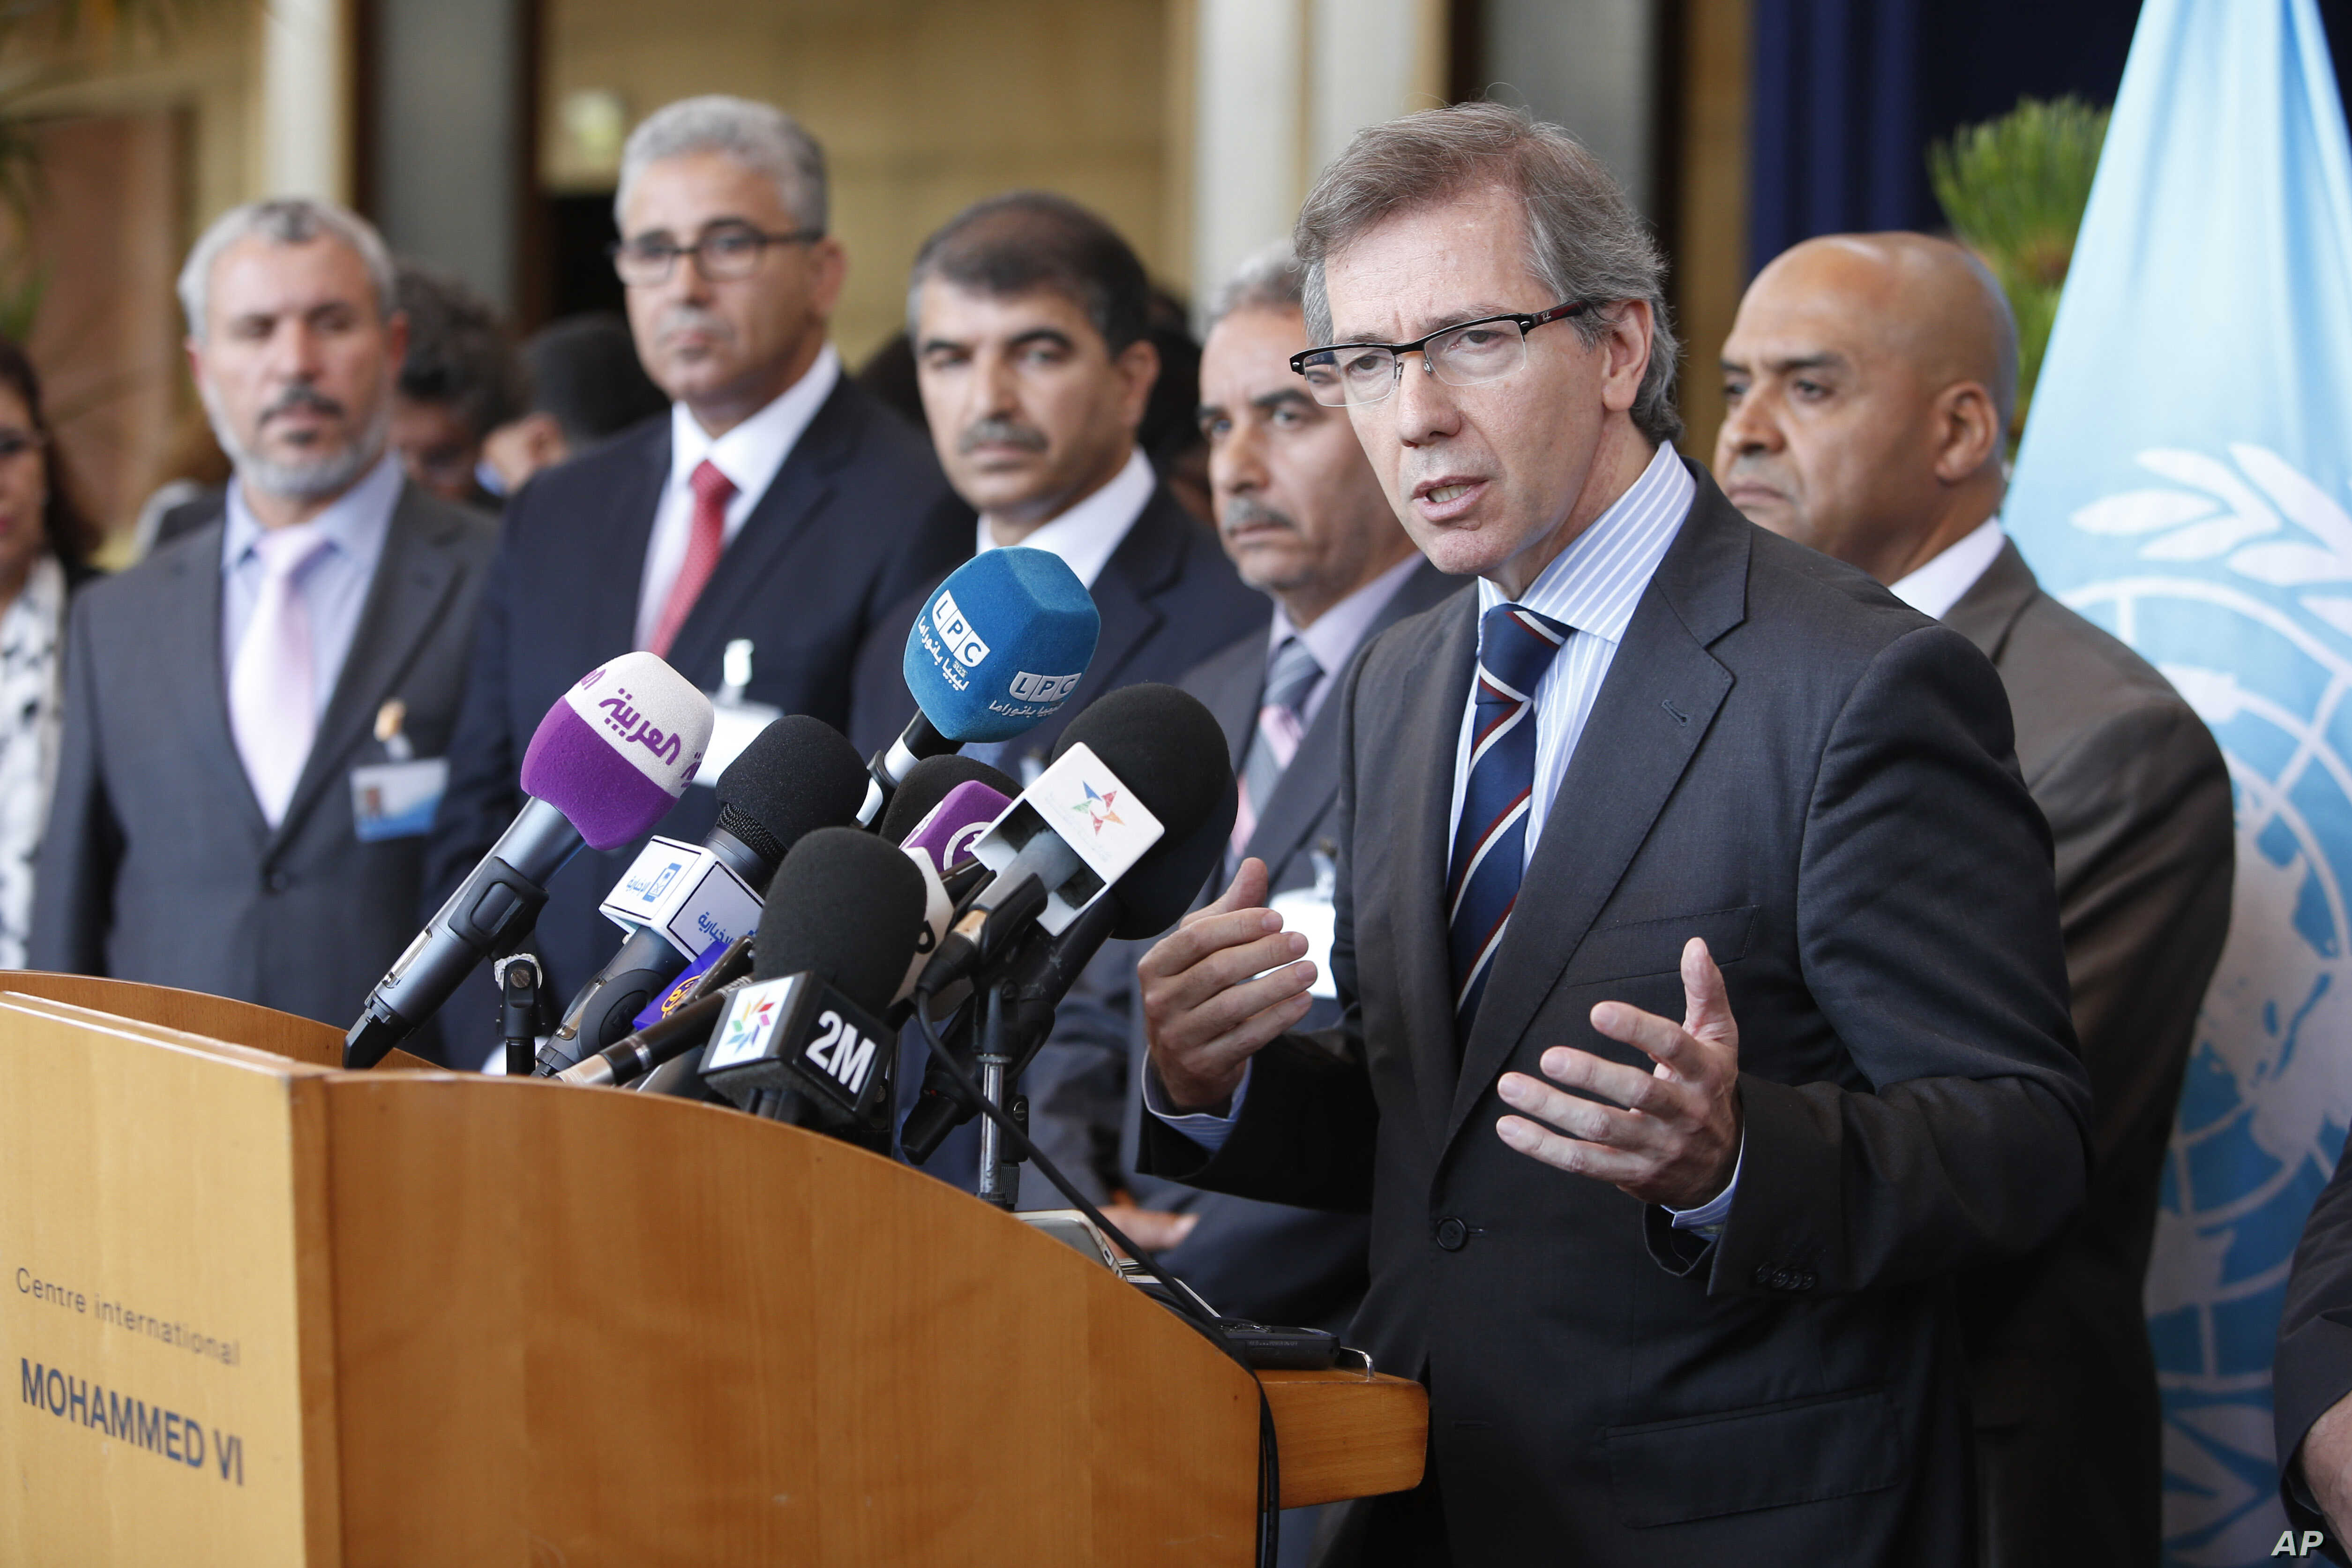 U.N. representative for Libya, Bernardino Leon, right,  addresses reporters while Libyan parliaments members listen in Rabat, Morocco, Sept. 18, 2015.